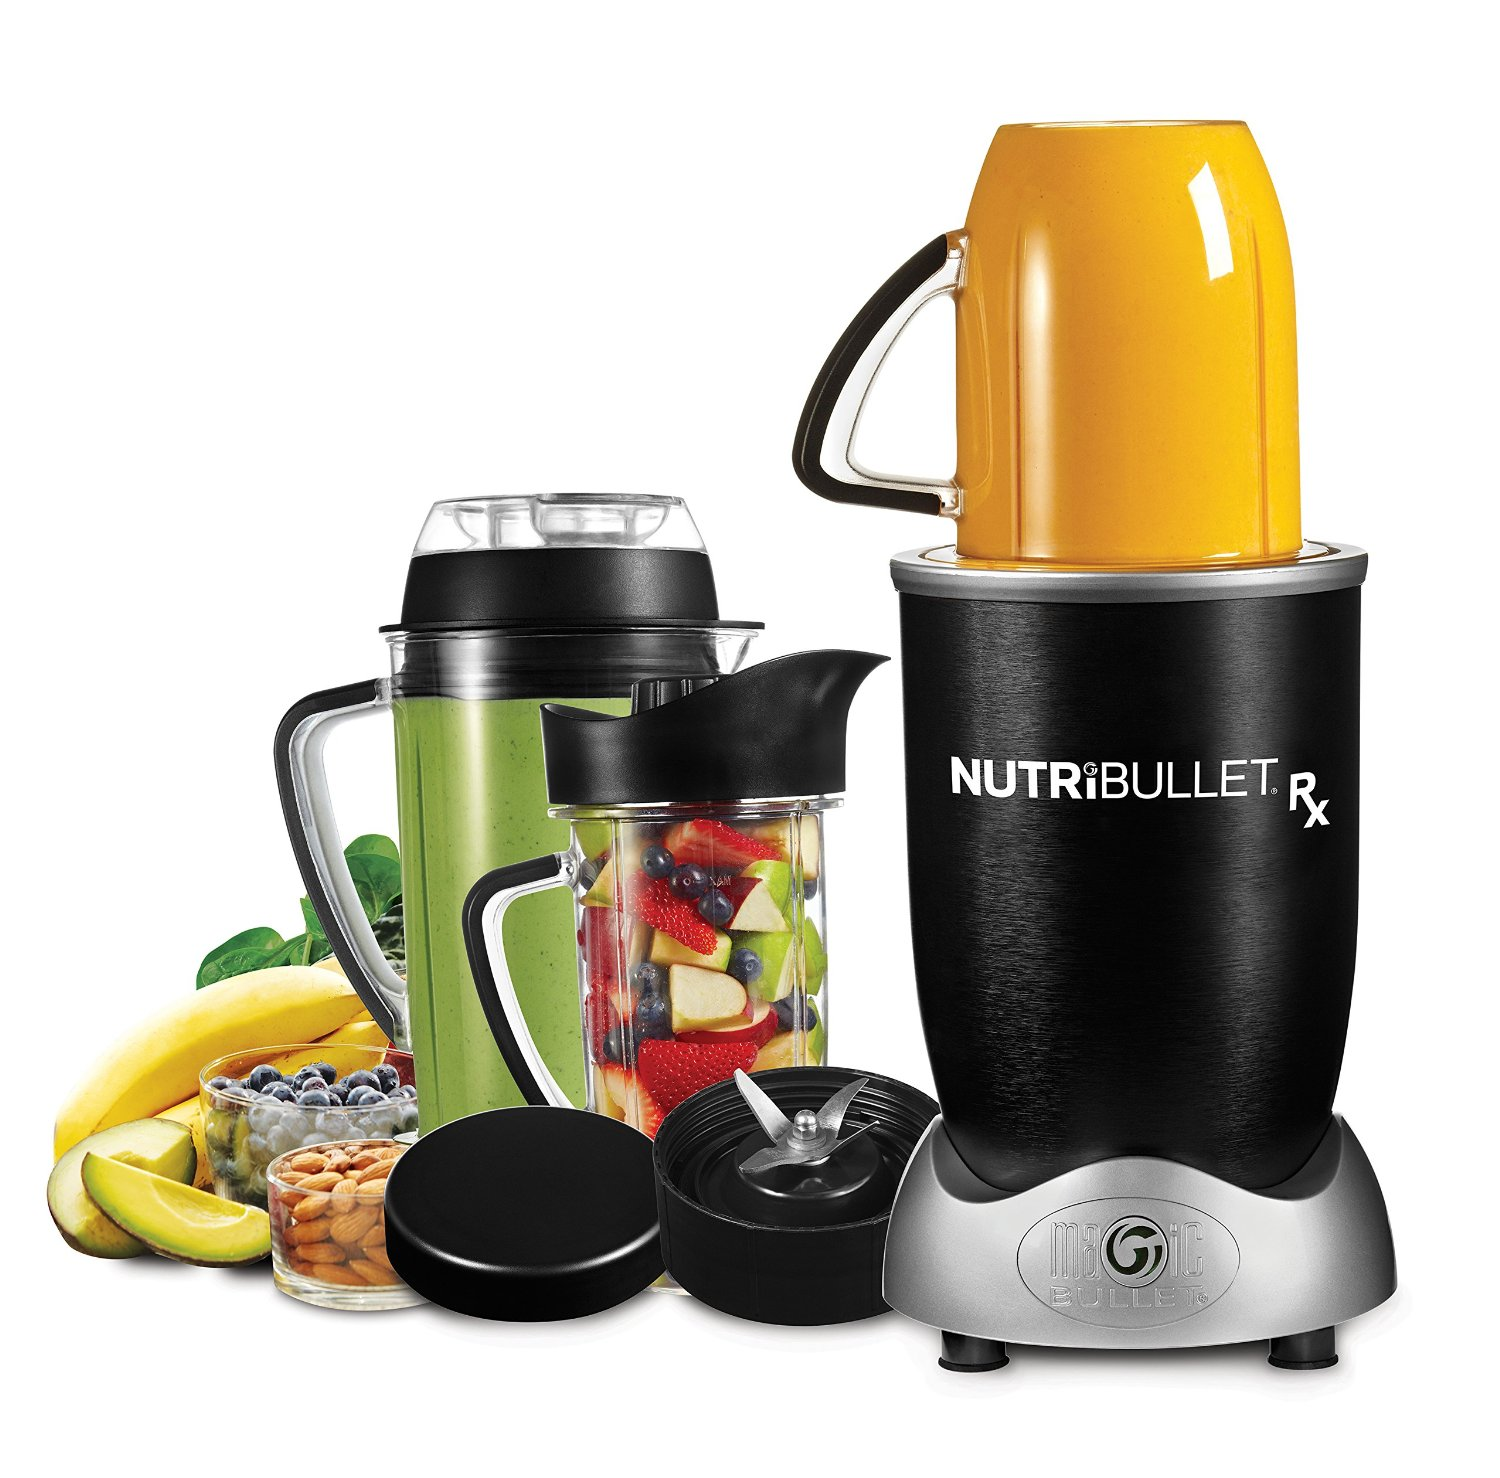 This is a nutrition extractor